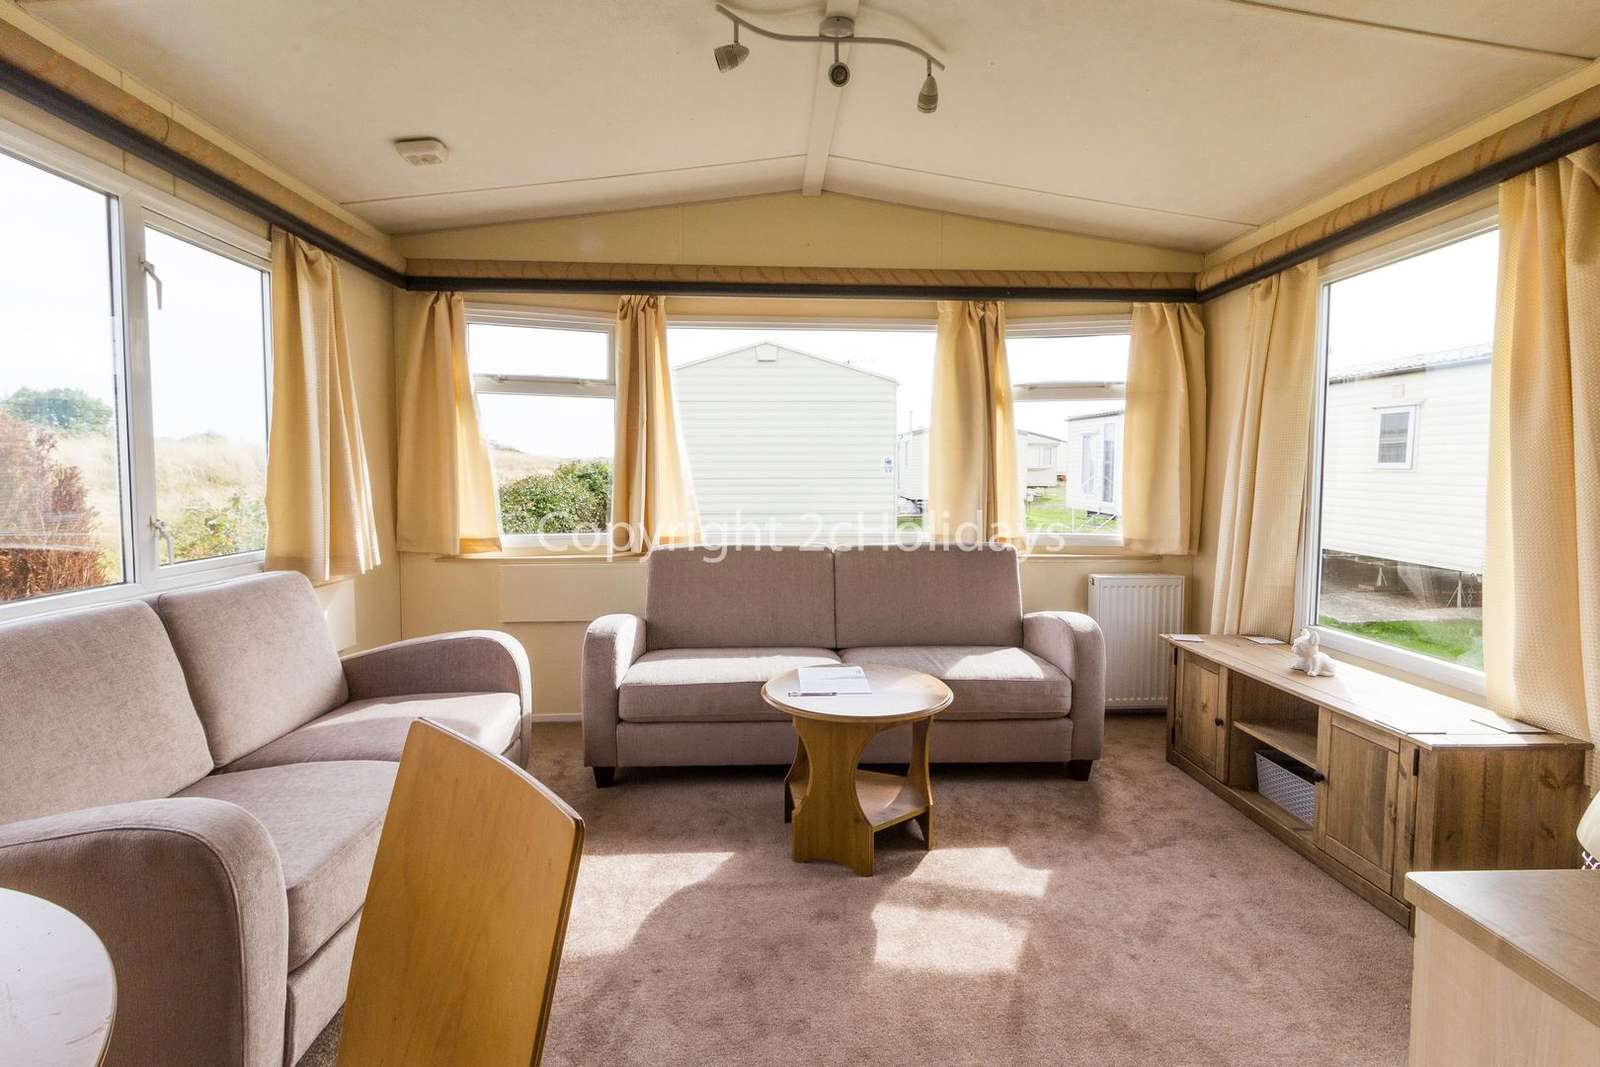 Caravan for hire in Clacton-On-Sea